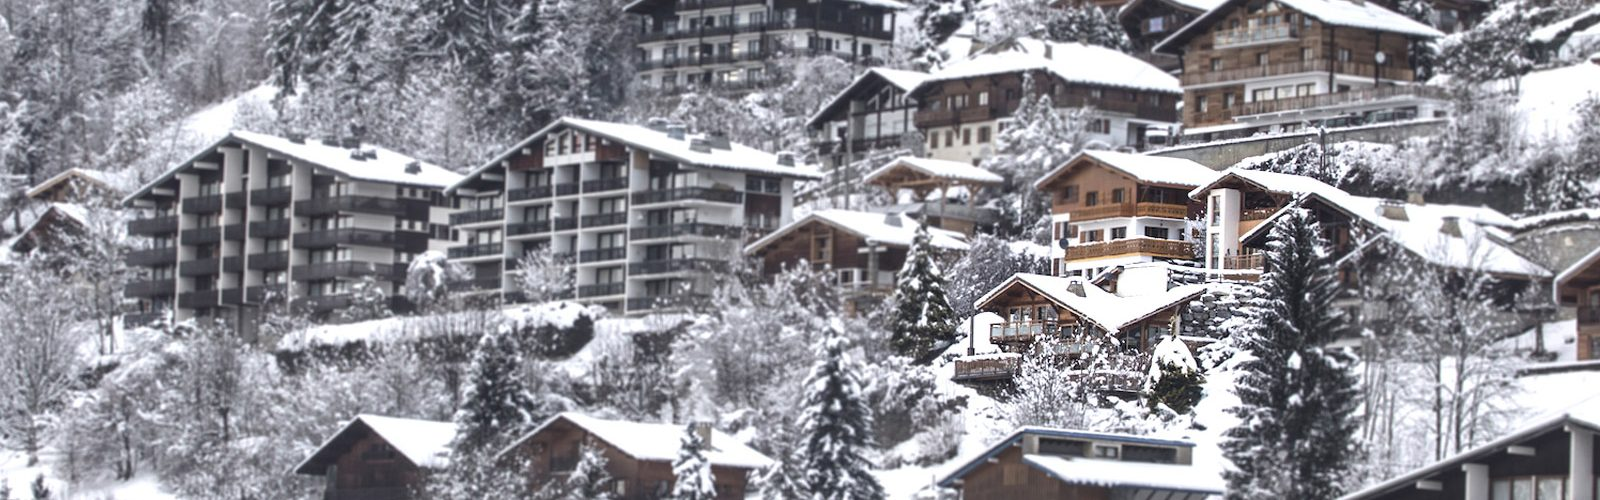 Chillout Mountain Chalets Morzine mountain side